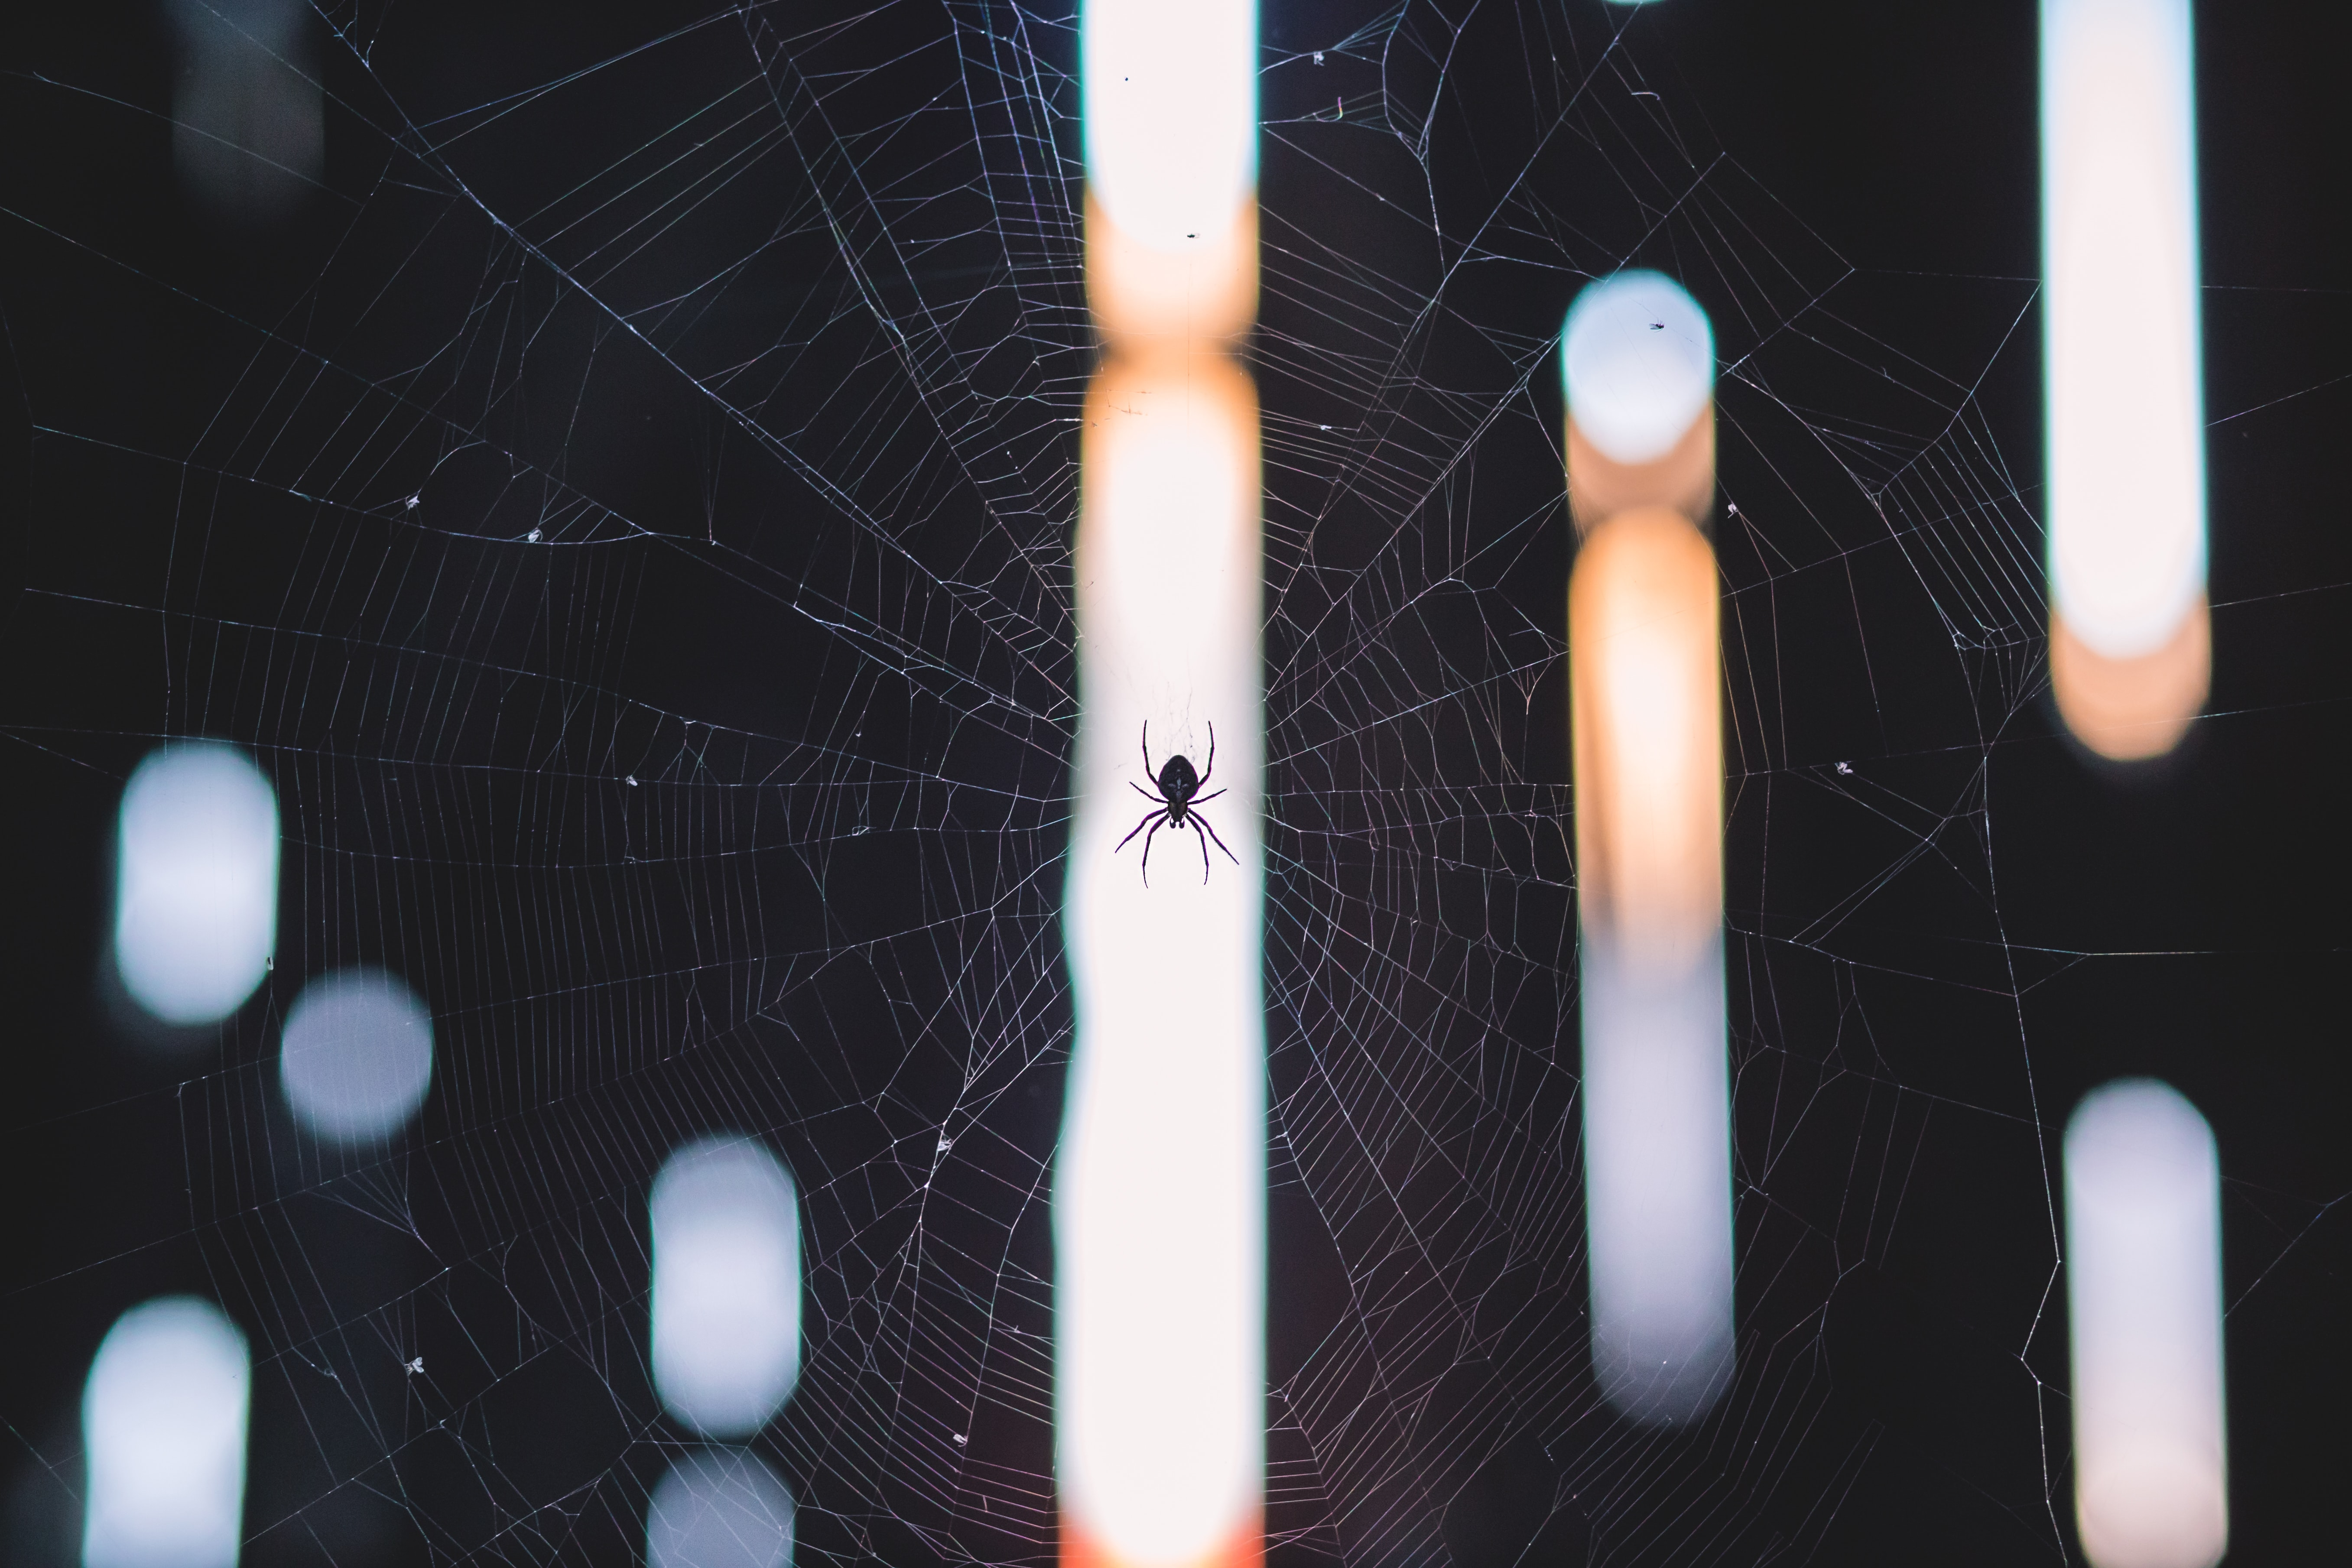 A little spider in his web.